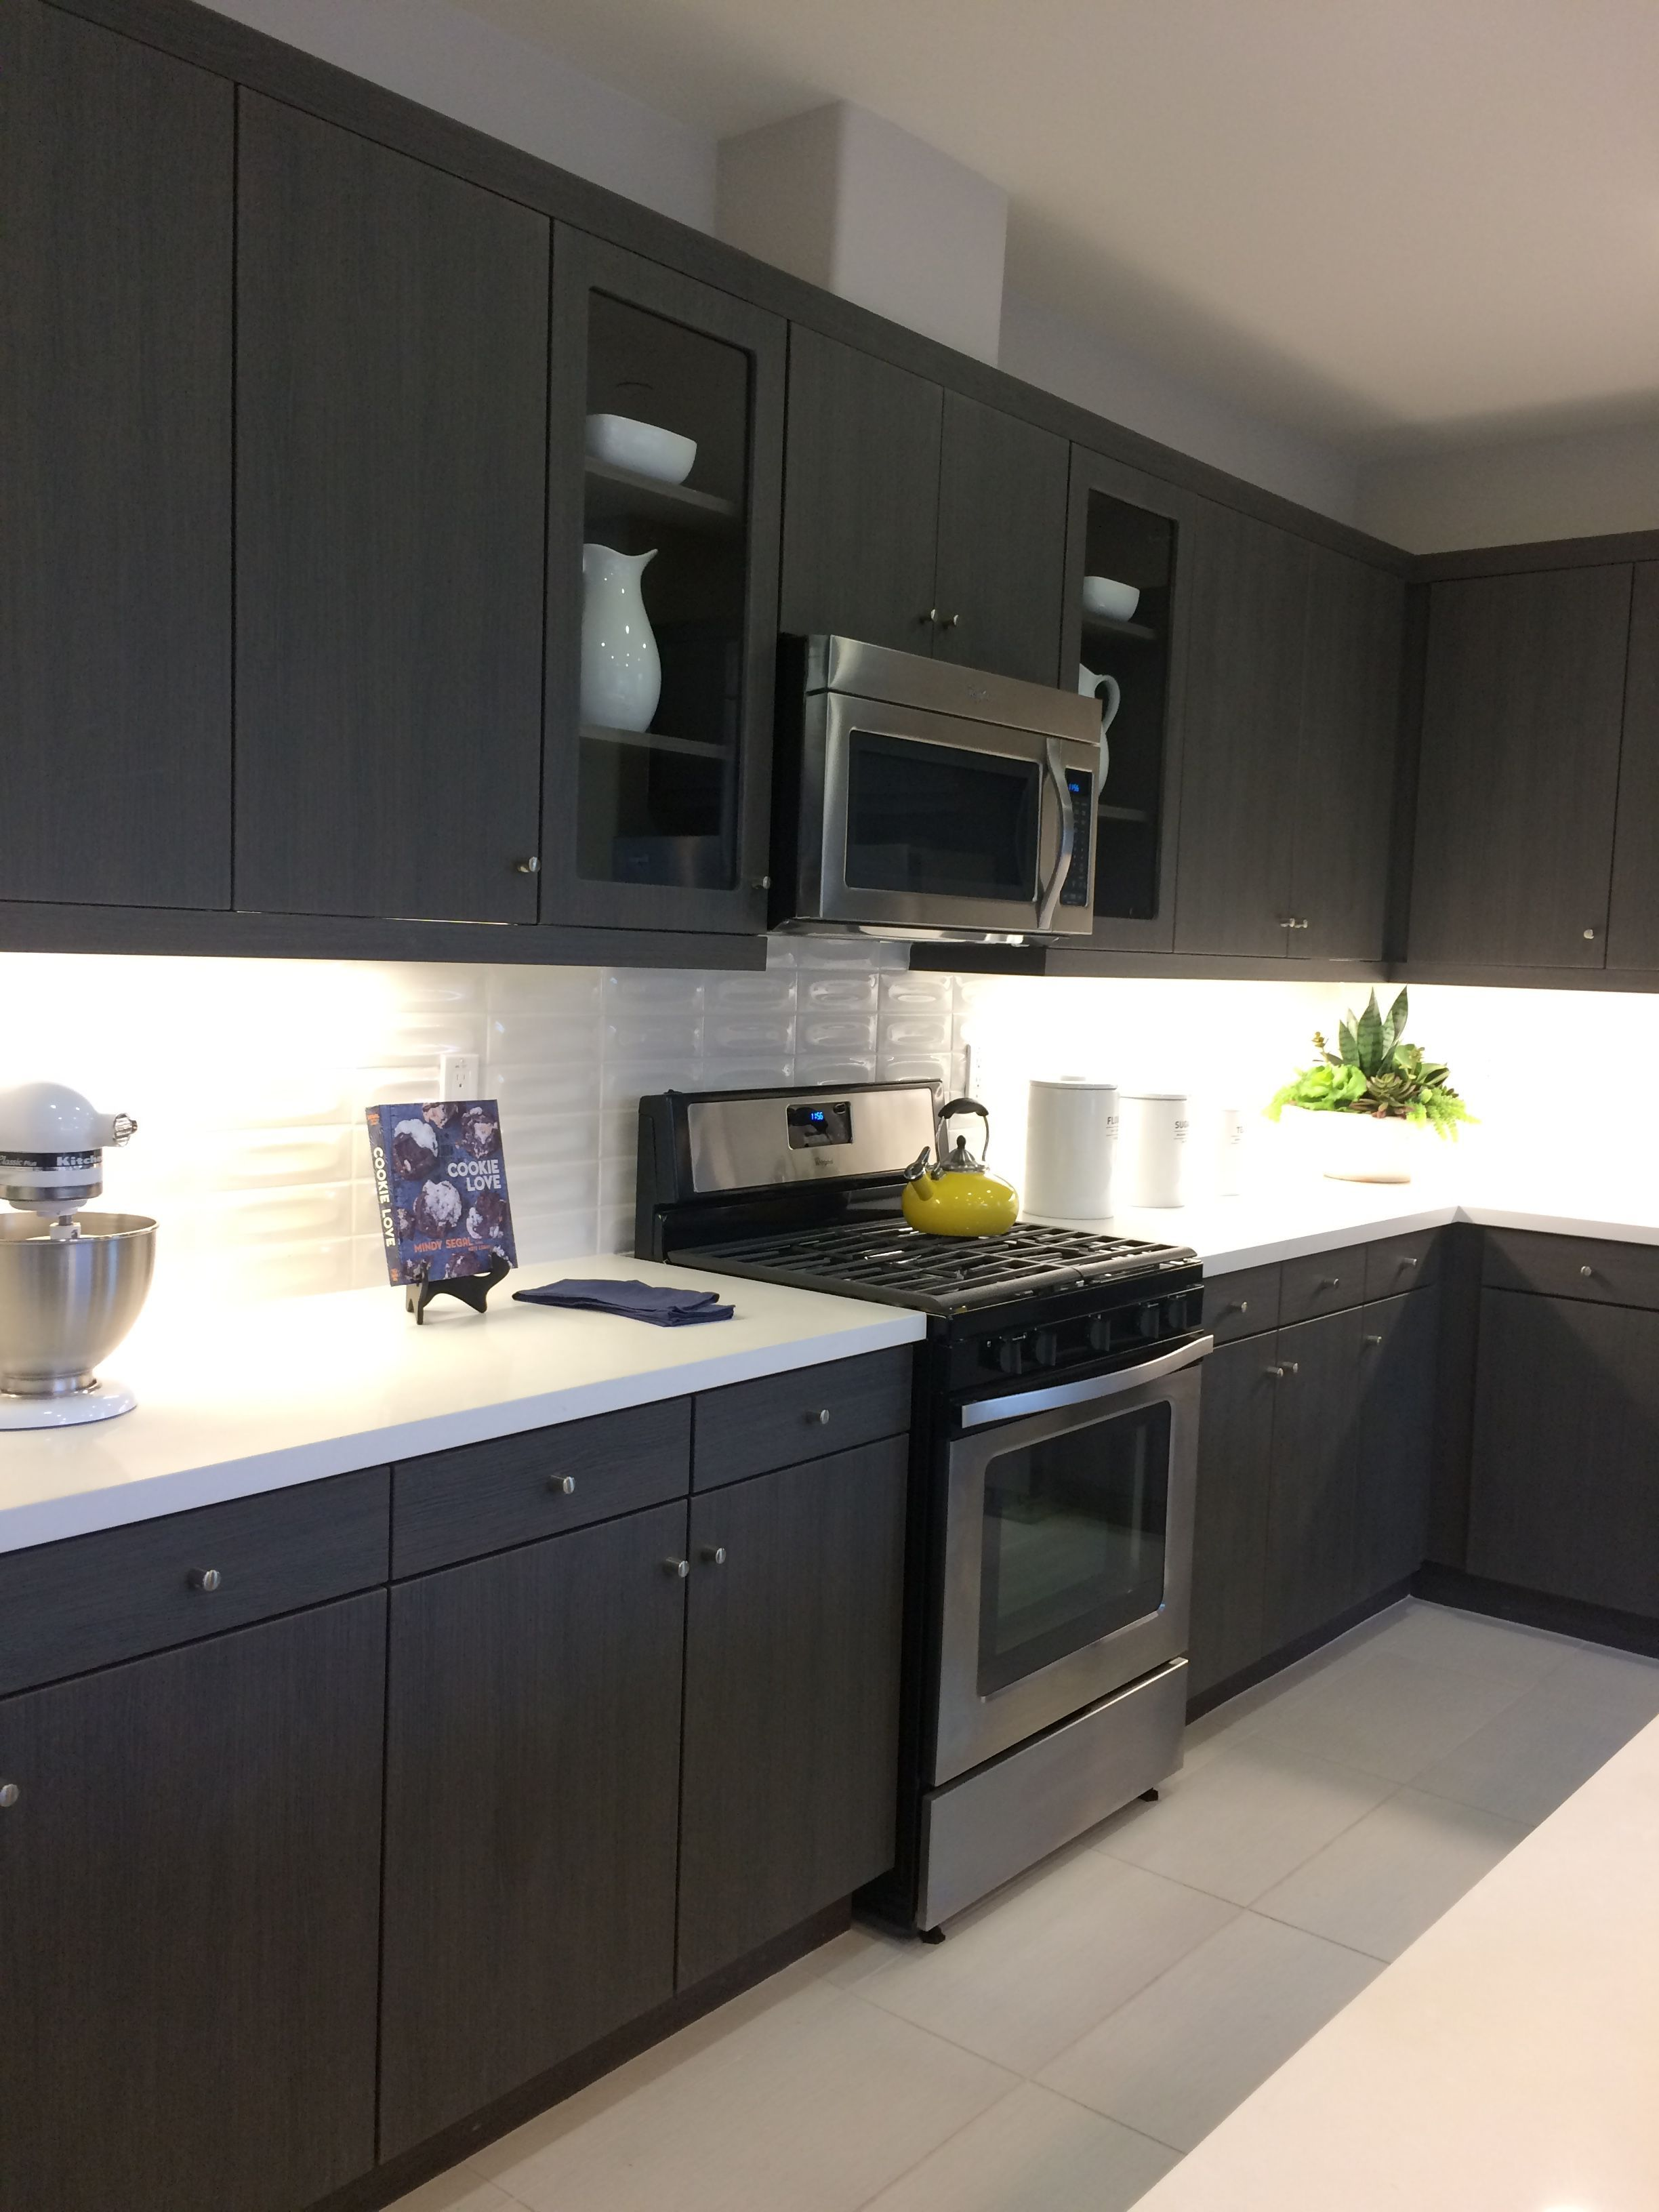 Dark Brown Black Kitchen Cabinets Light Quartz Countertop White Backsplash Light Floo Kitchen Cabinets Painted Grey Black Kitchen Cabinets Black Kitchens